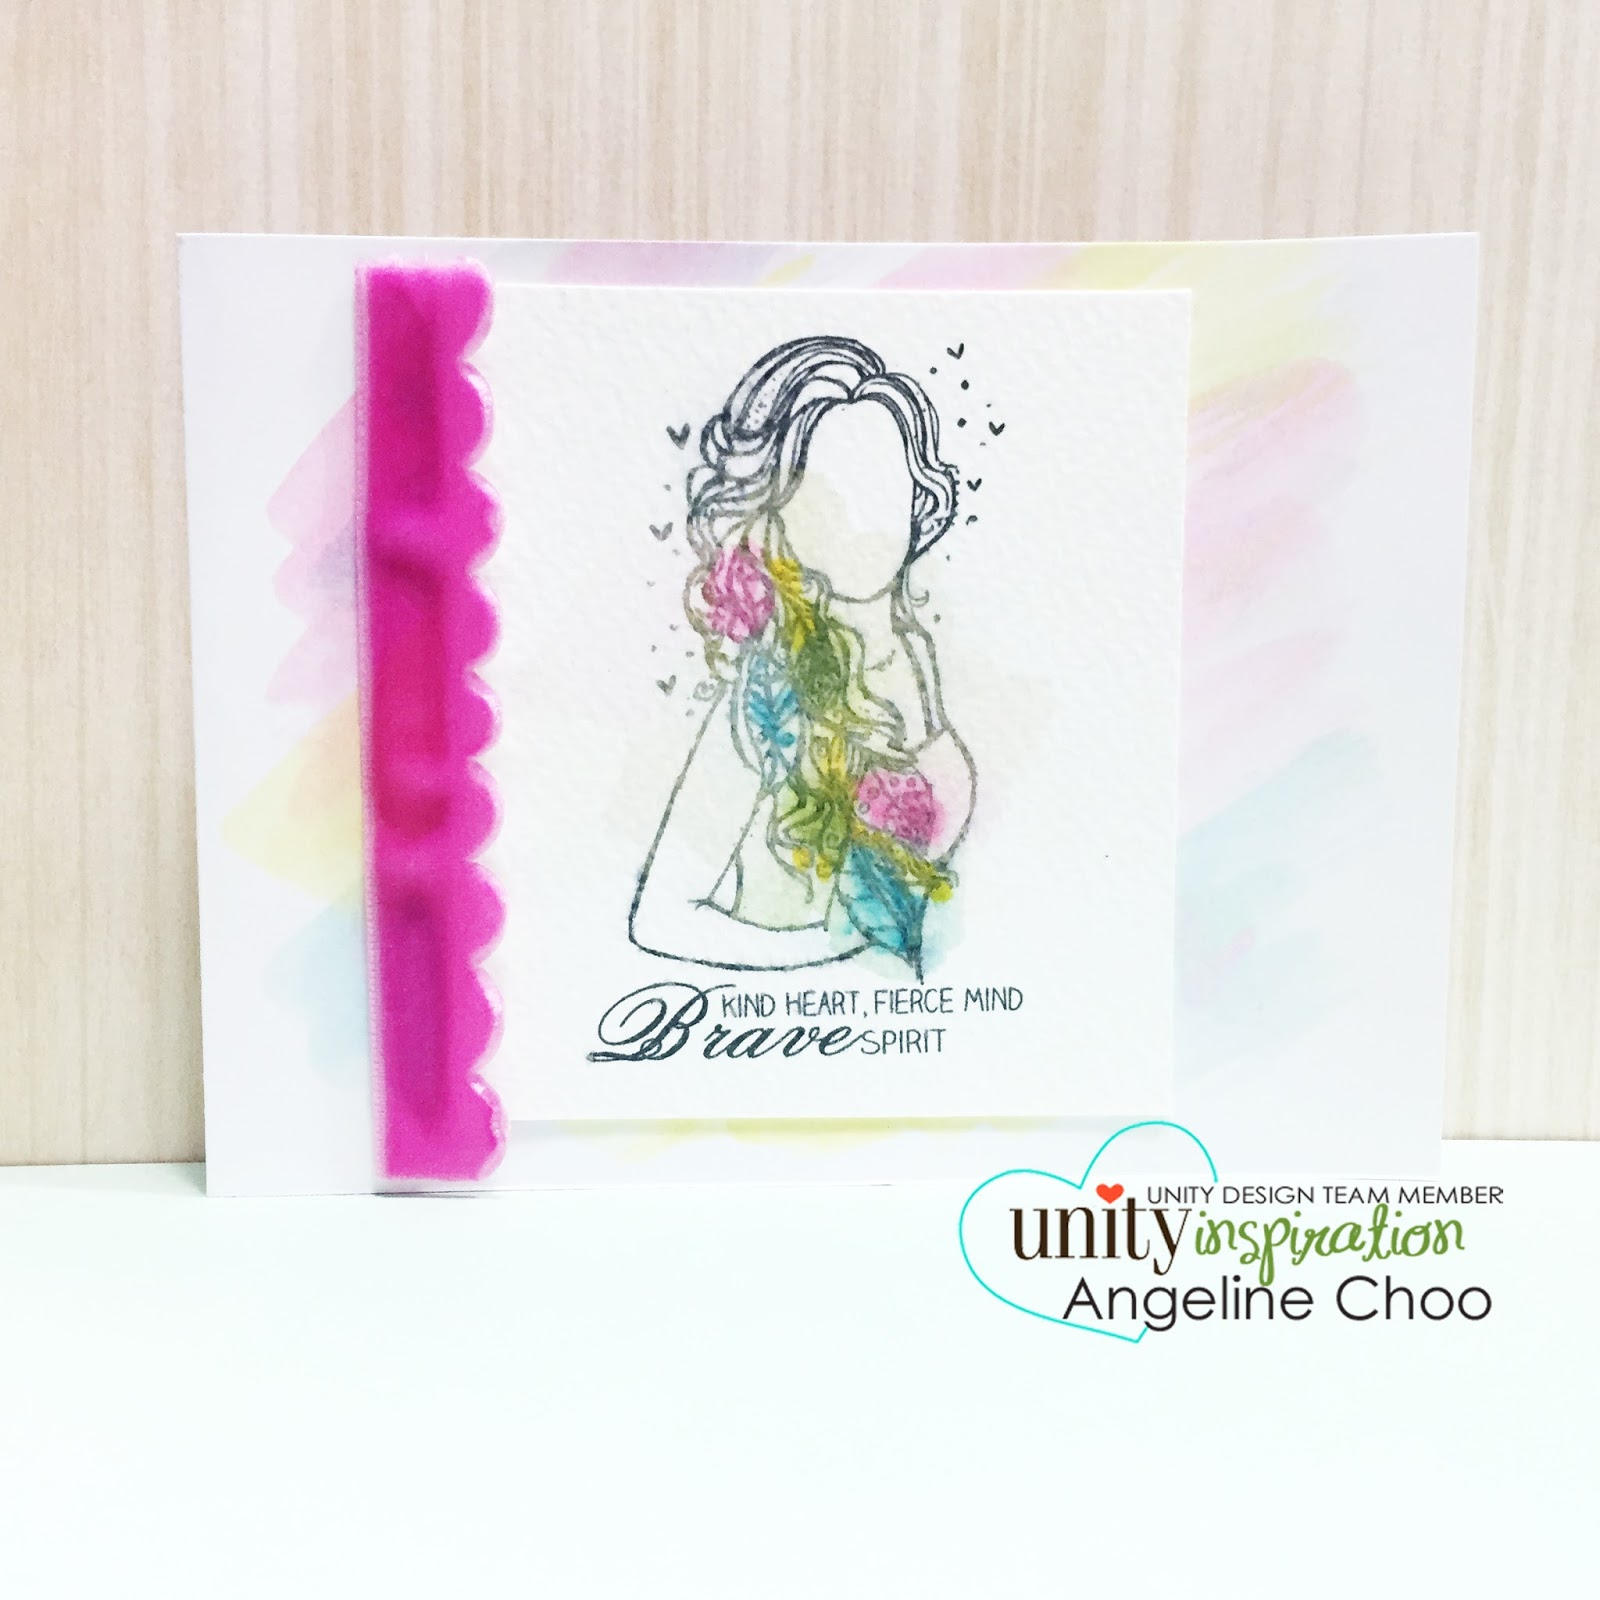 Watercolor cards new videos scrappy scrappy scrappyscrappy watercolor cards and new videos scrappyscrappy unitystampco stamp card m4hsunfo